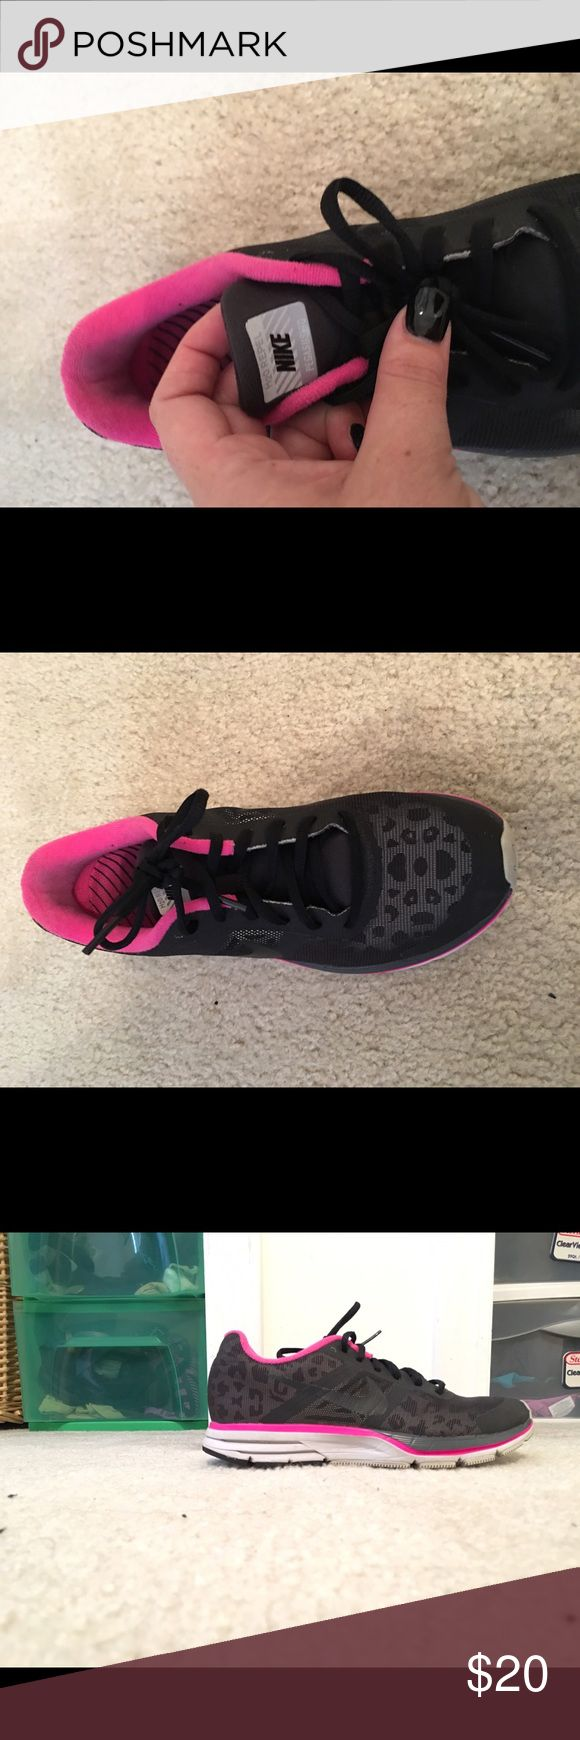 Black and pink cheetah printed Nike shoes Mostly black with a grey cheetah print, pink accents. Great running shoes, size 8 Nike Shoes Athletic Shoes